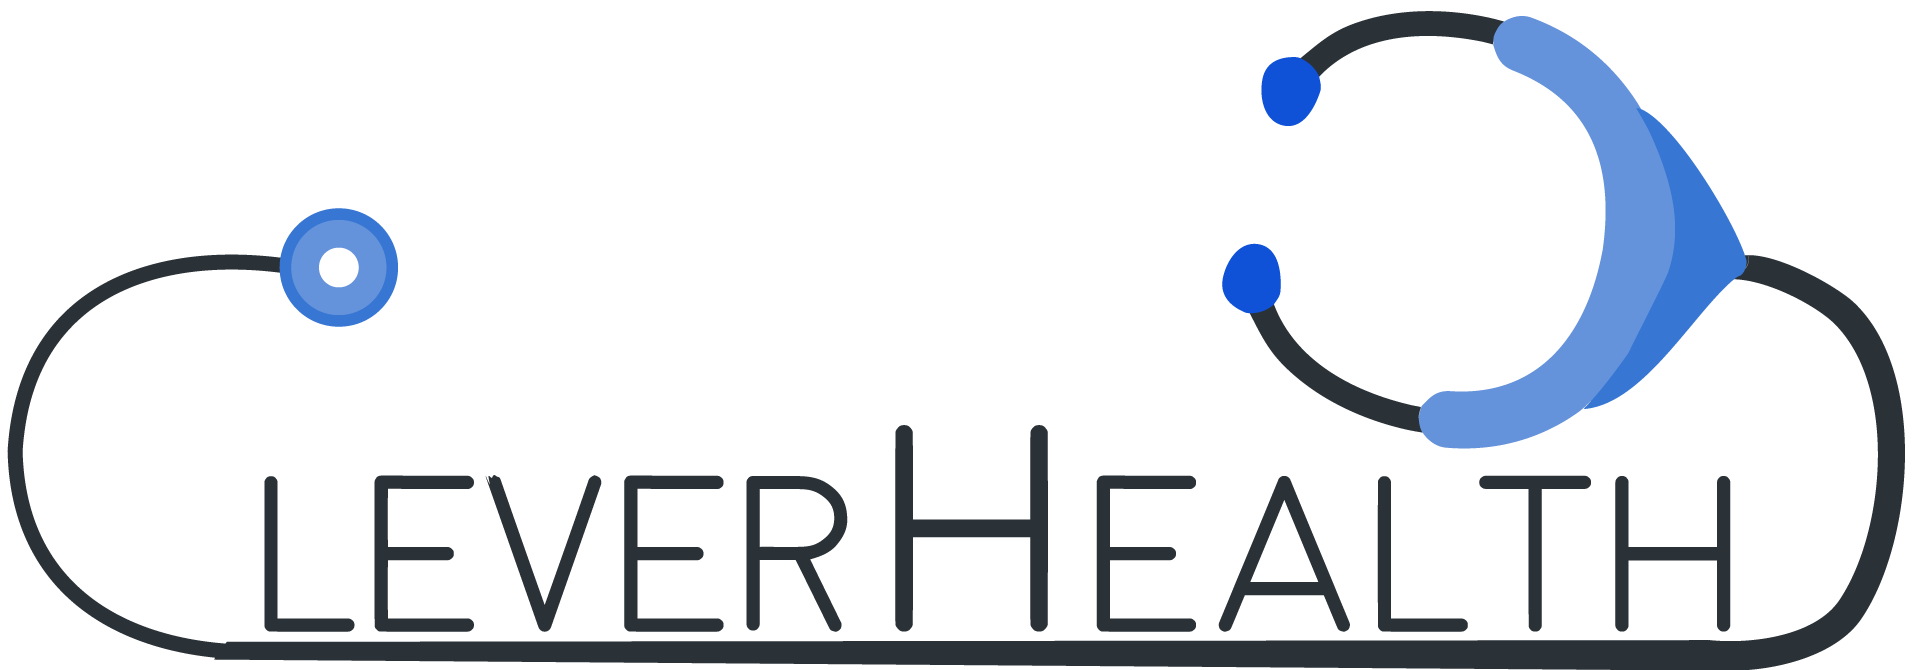 CleverHealth